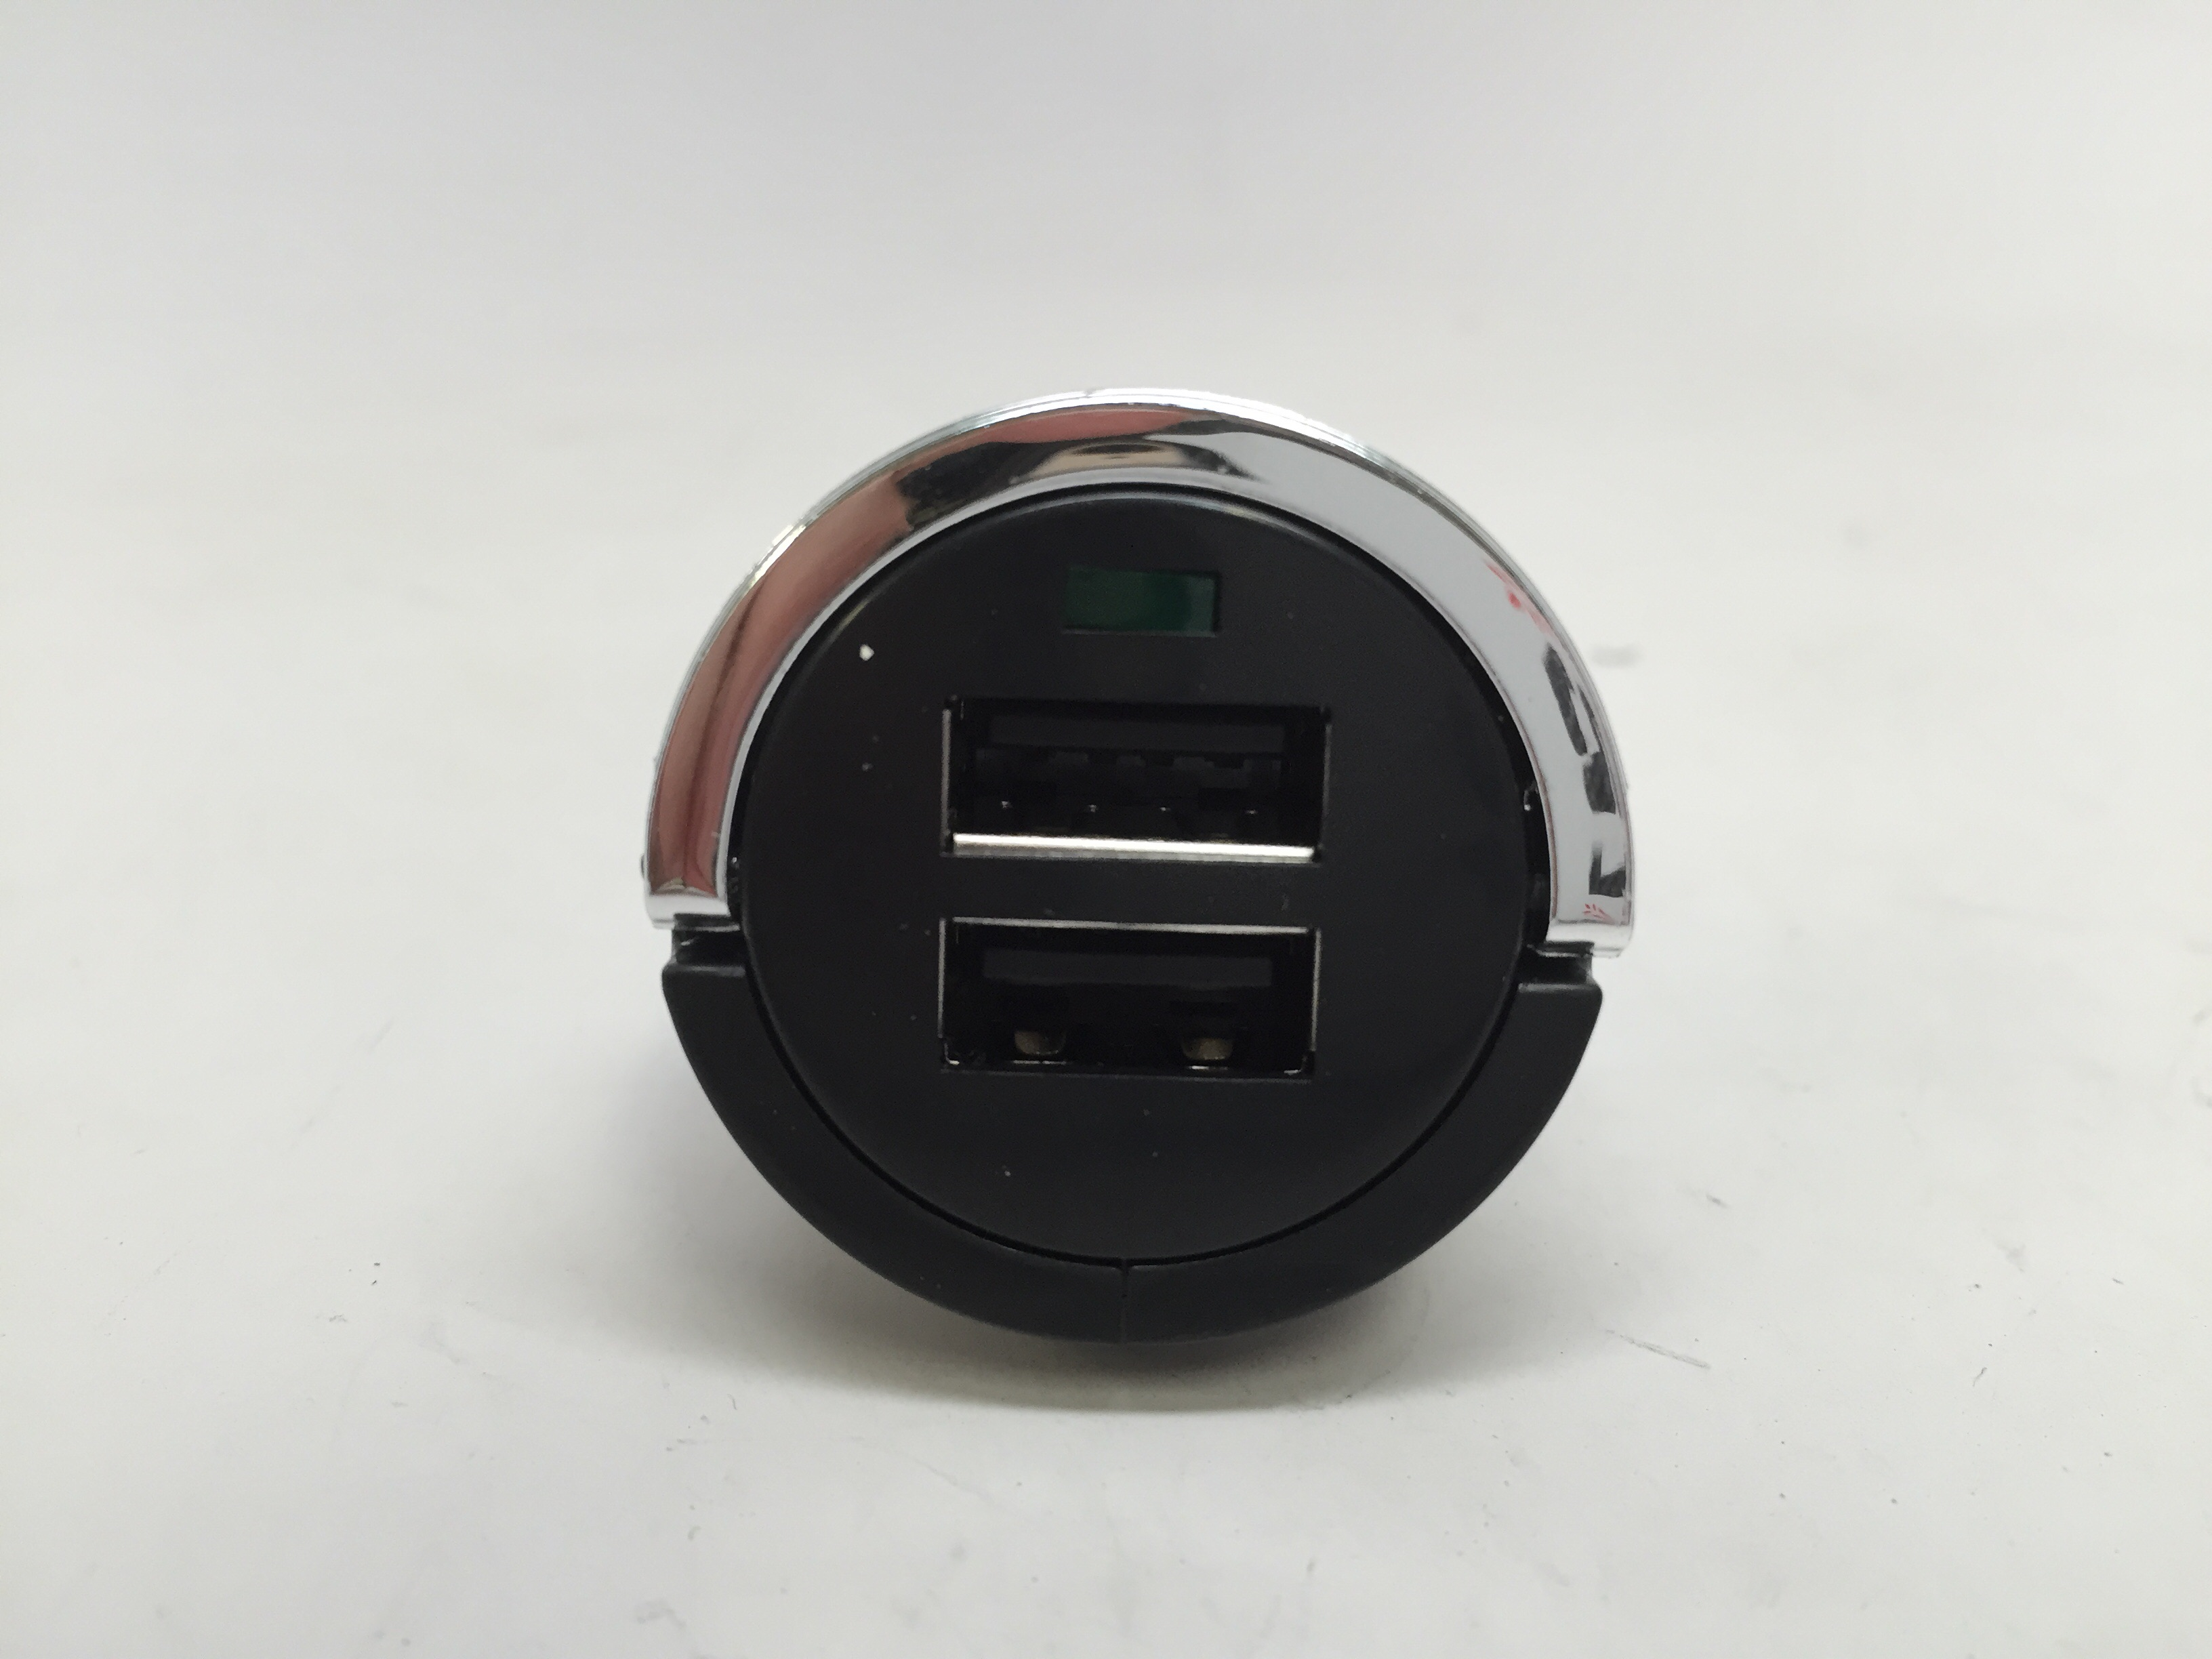 MARINE RV CAR TRUCK TRAILER BLACK MINI USB CHARGER INPUT 12-24V